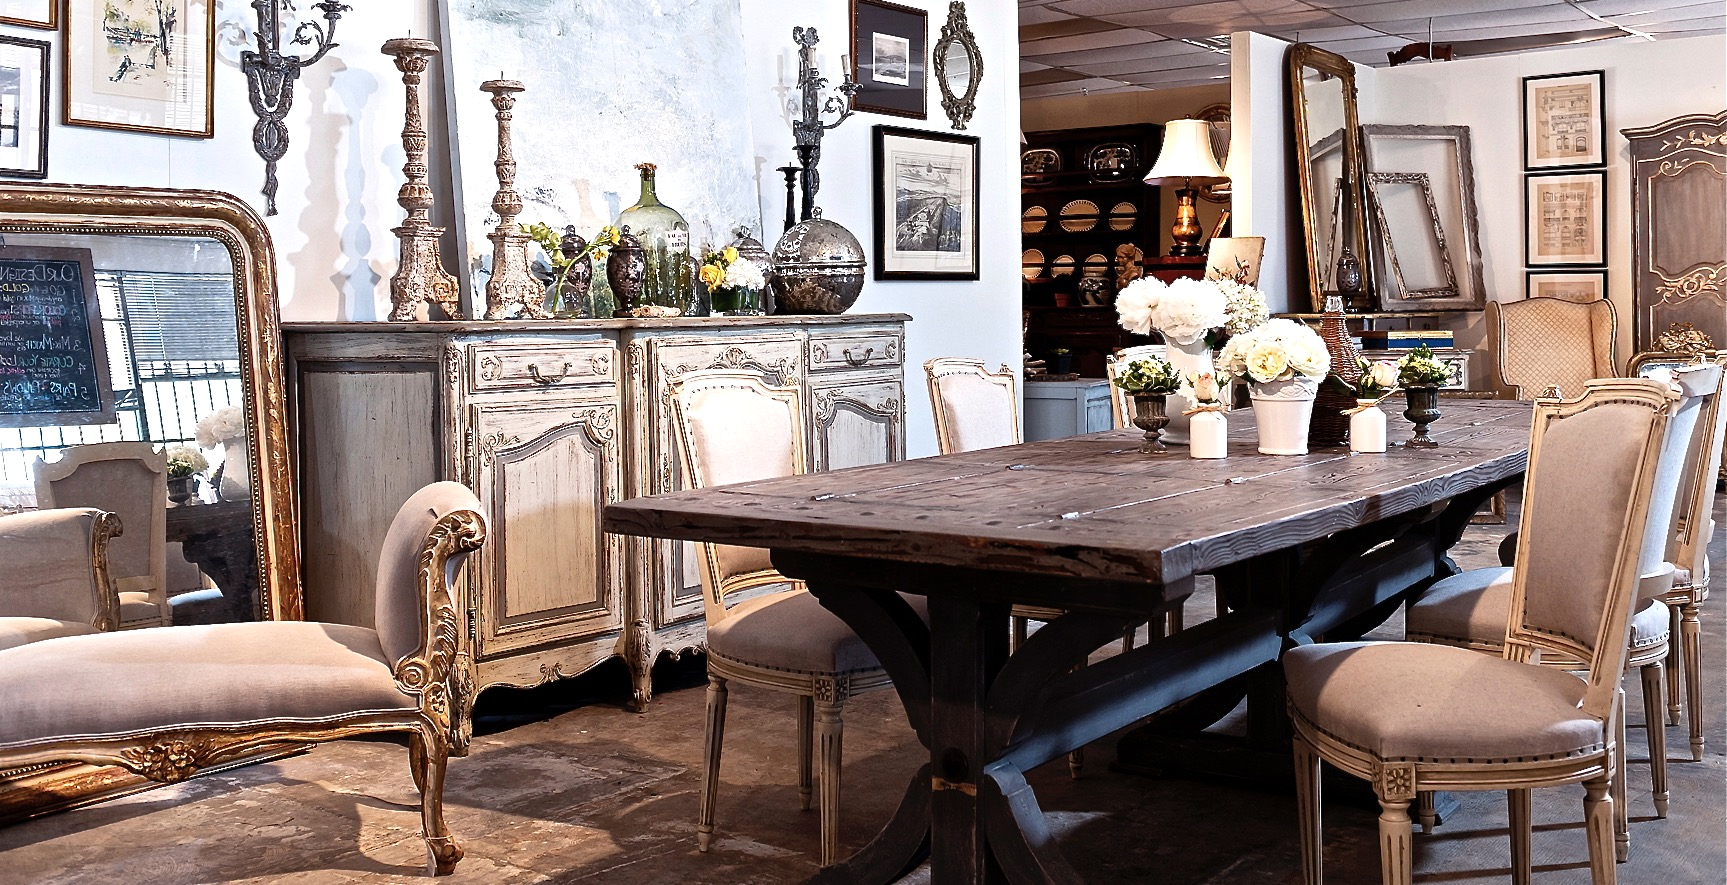 Village Antiques slowly grew and became full of antique furniture